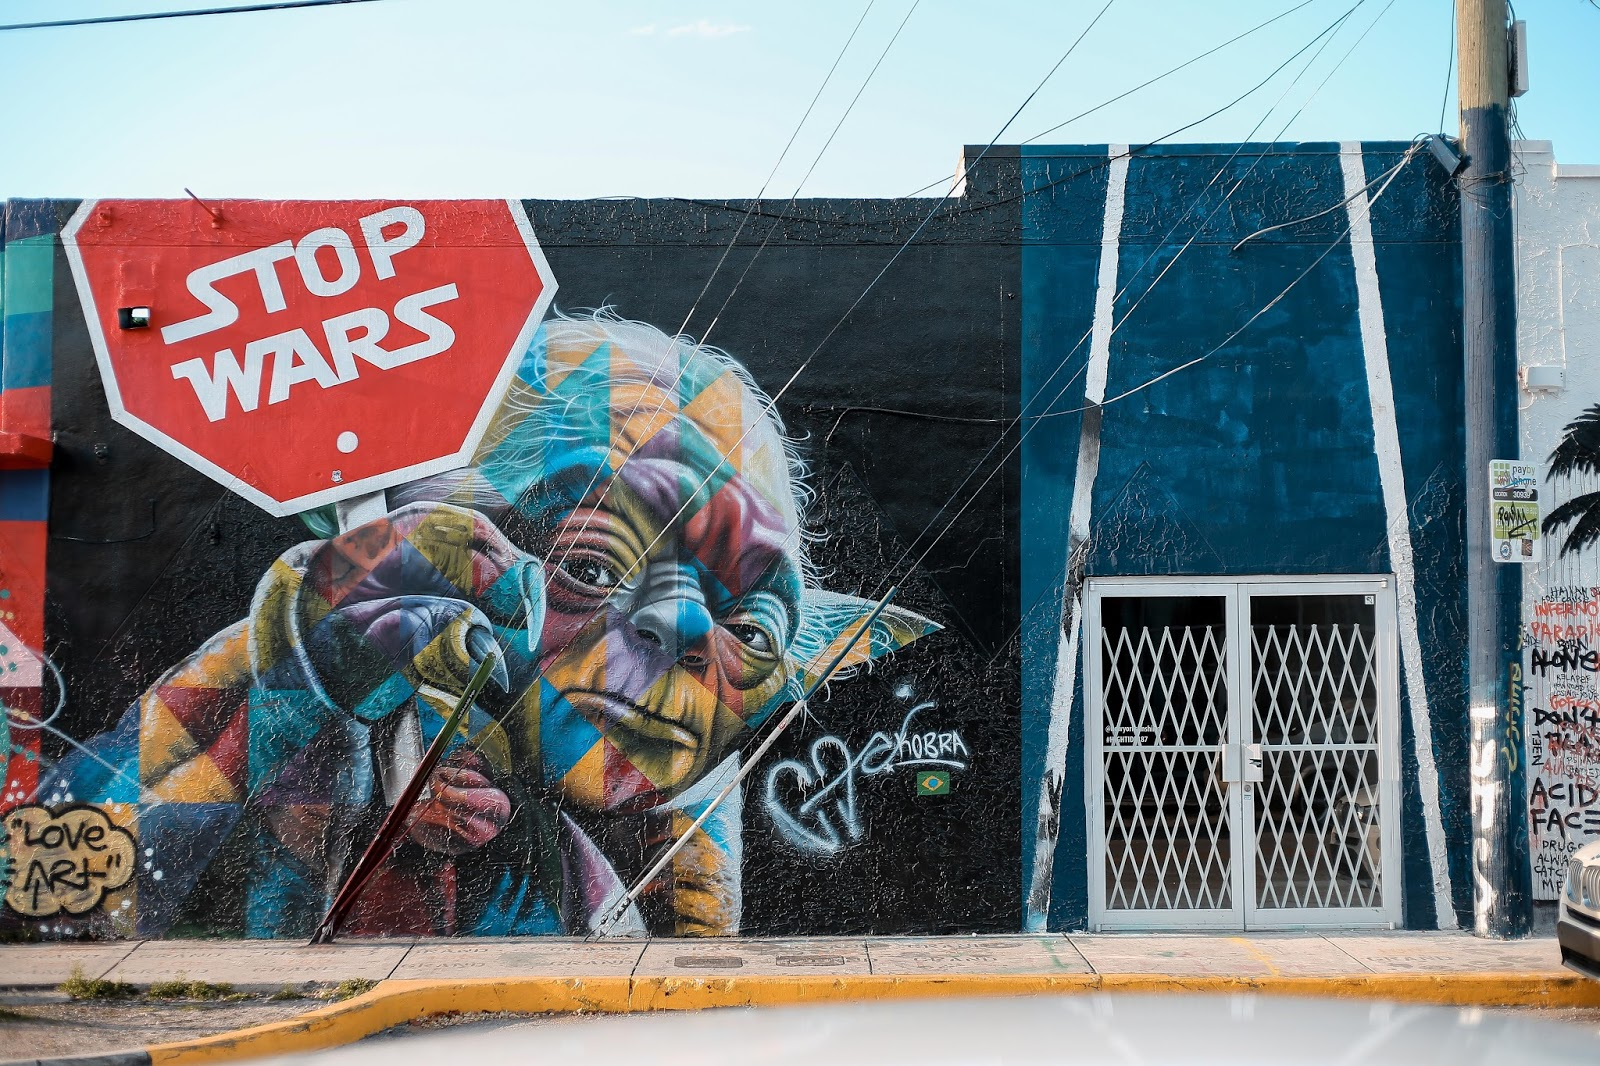 Wynwood Wall in Miami, Florida | Yoda says Stop Wars